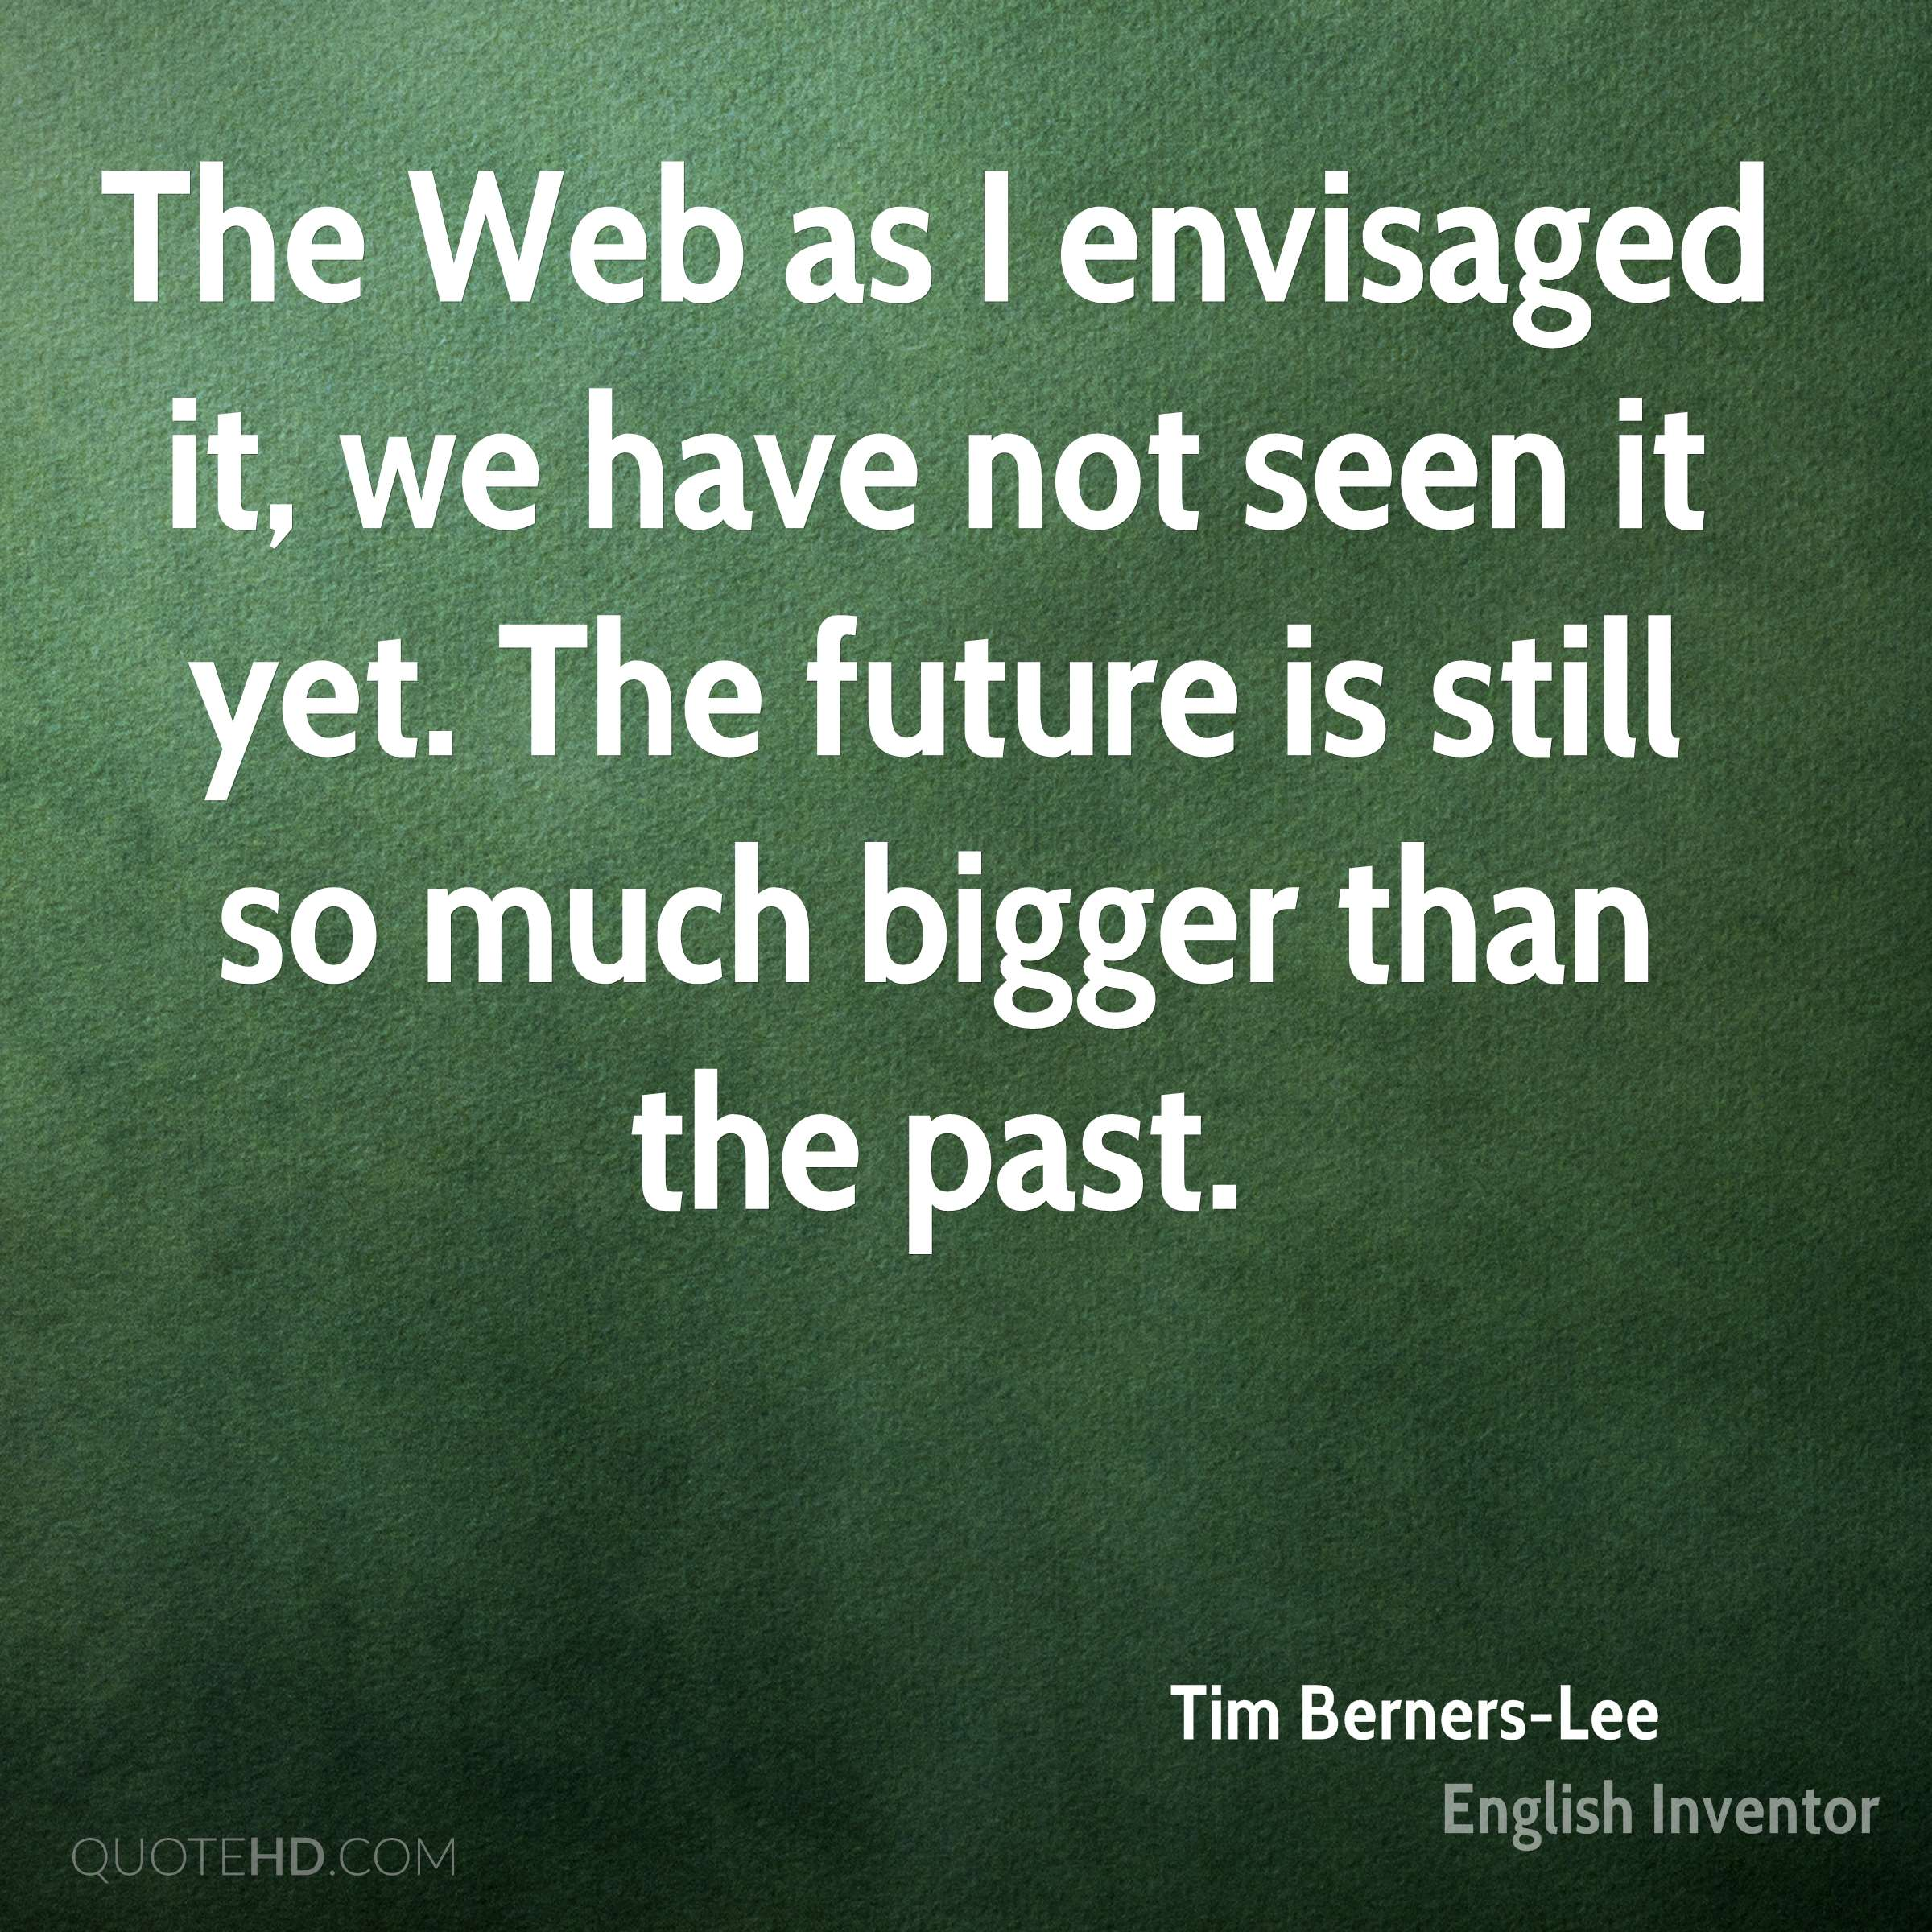 The Web as I envisaged it, we have not seen it yet. The future is still so much bigger than the past.